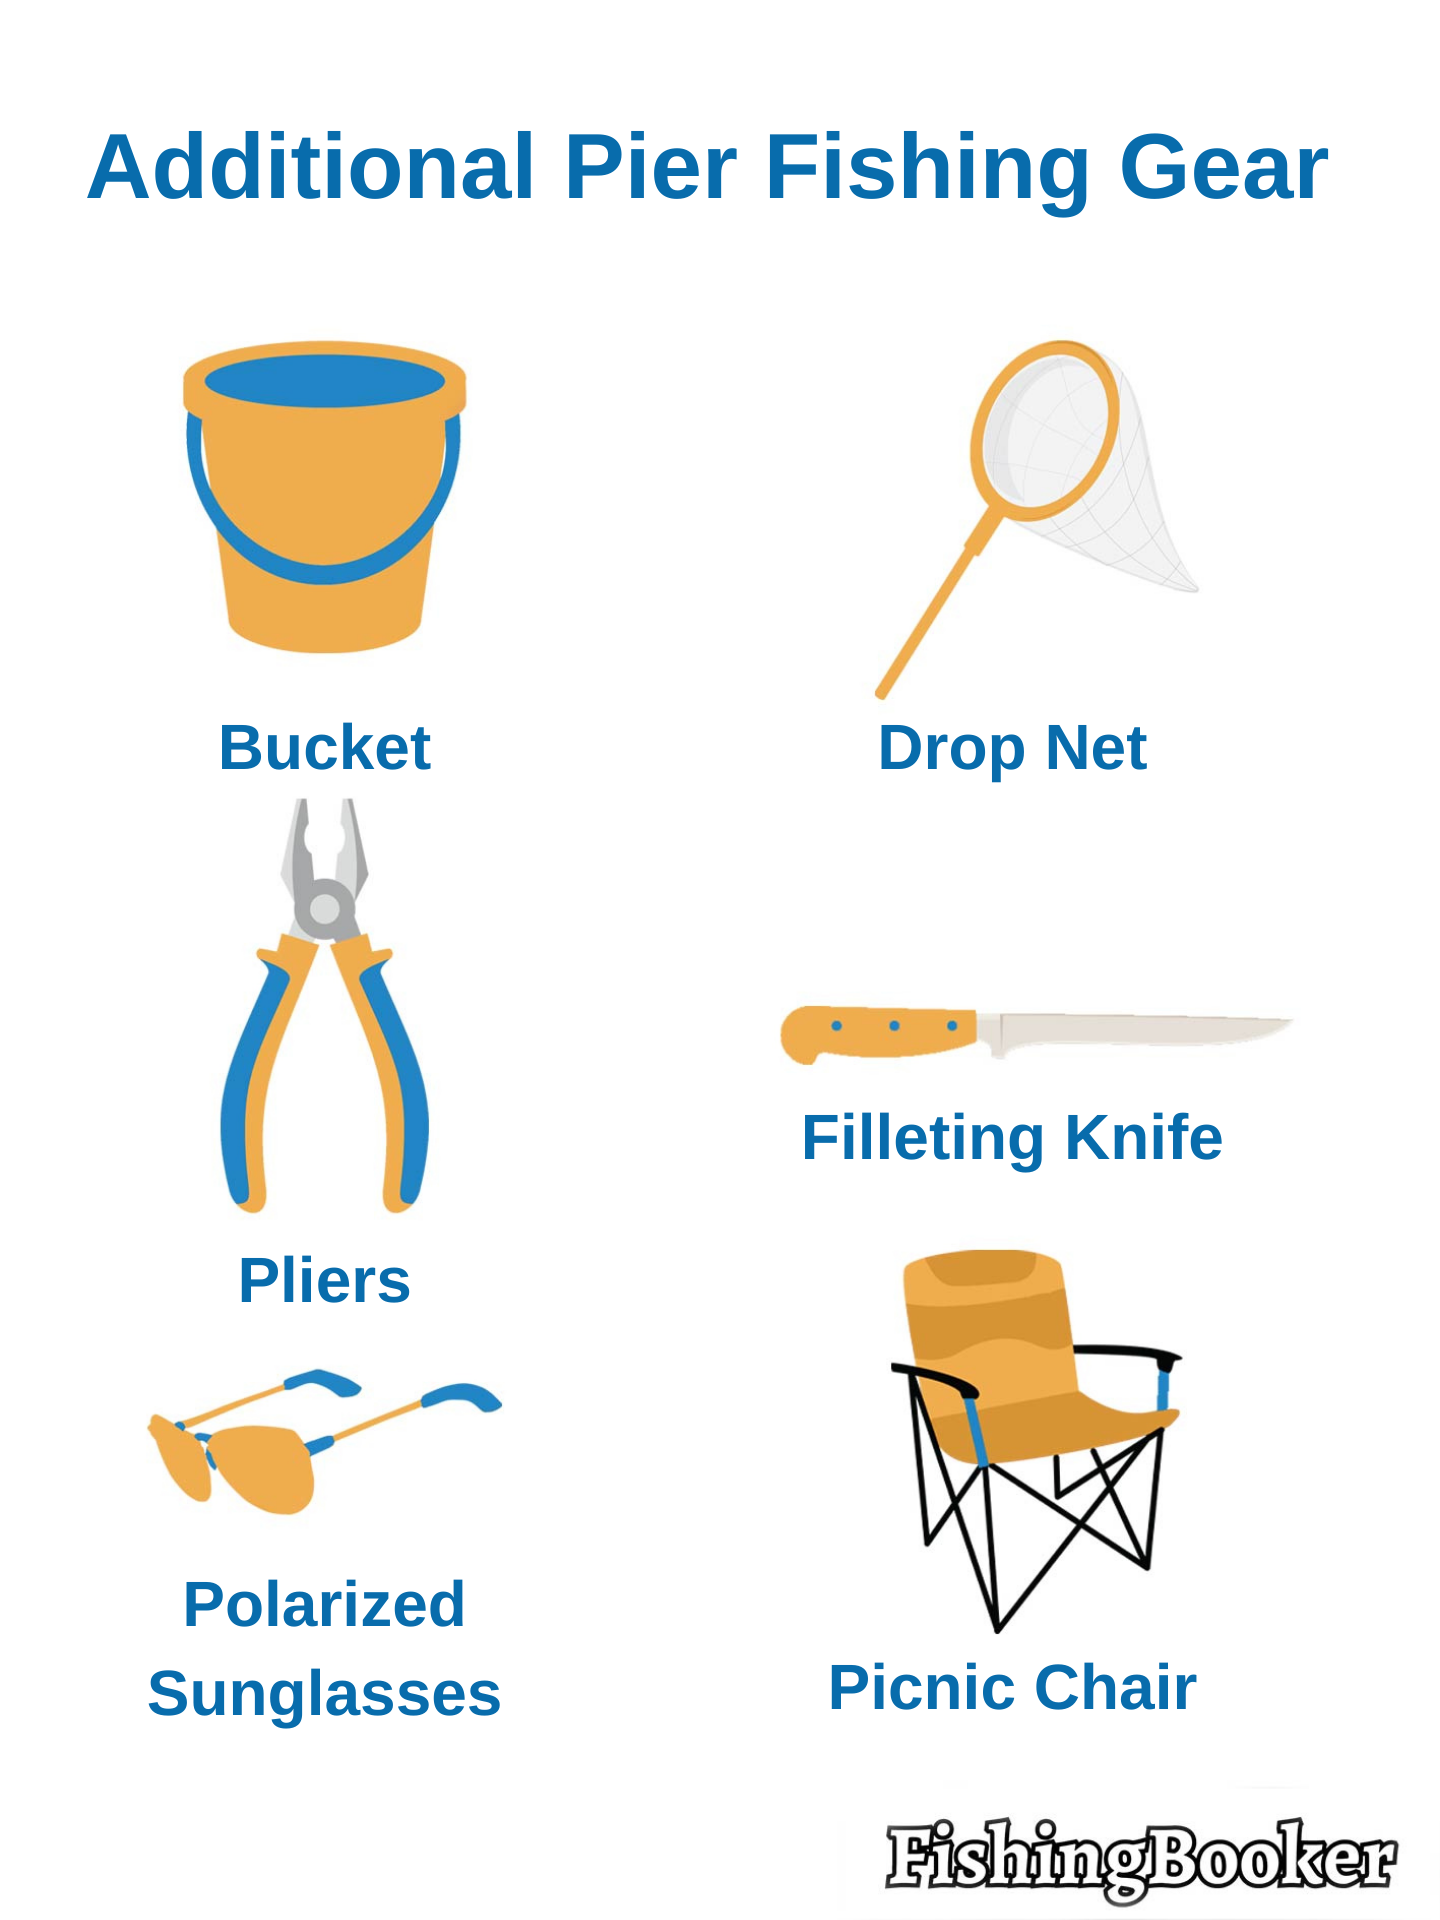 An infographic showing additional gear need for pier fishing